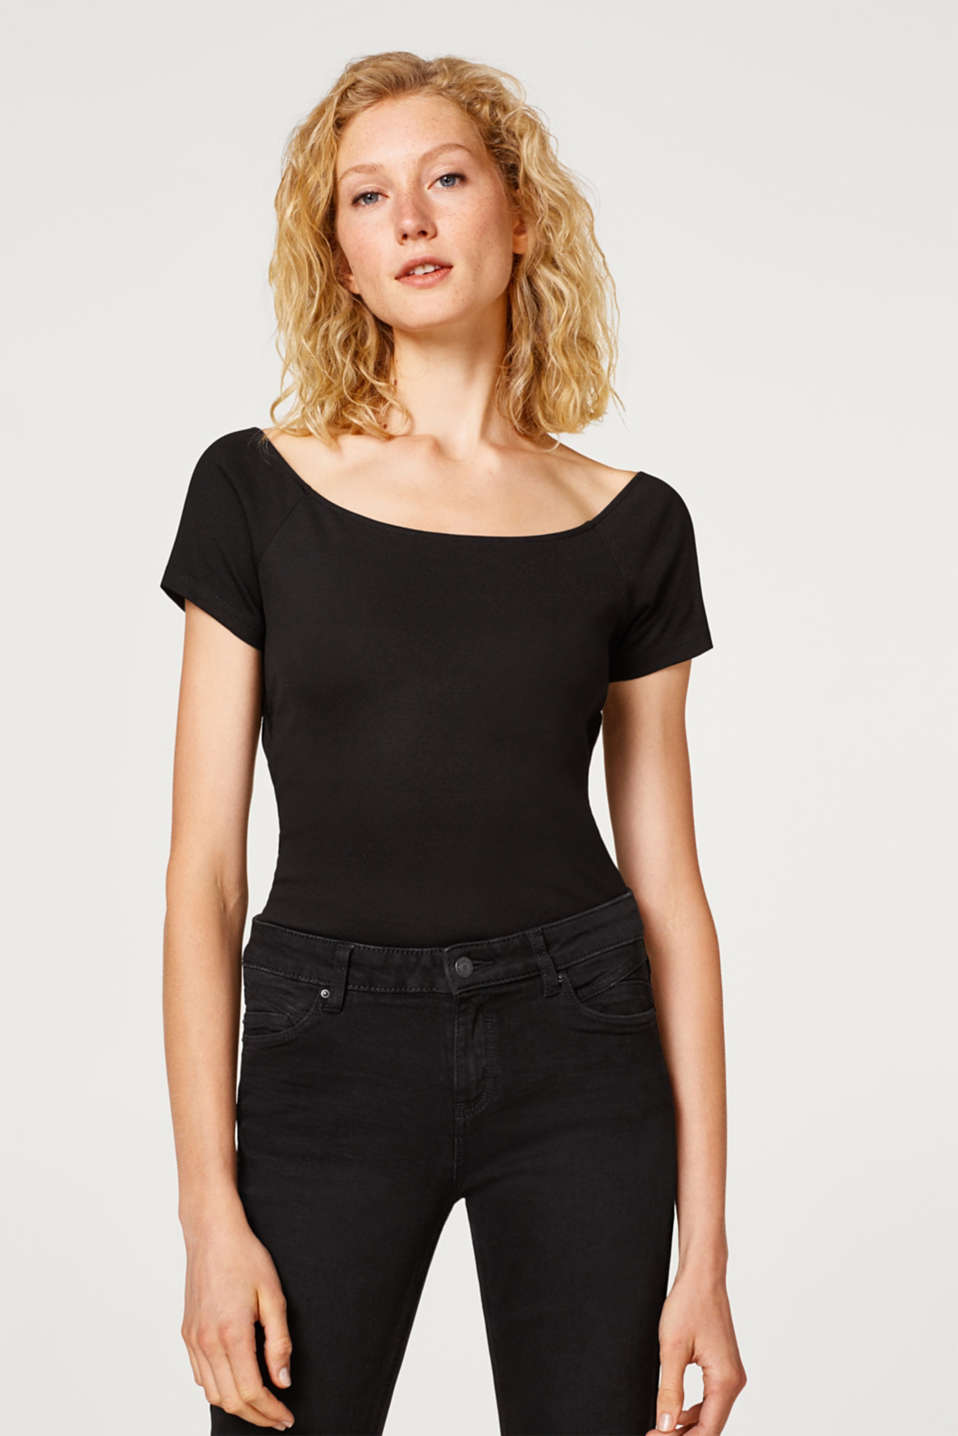 Esprit - Stretch top with a sophisticated back section